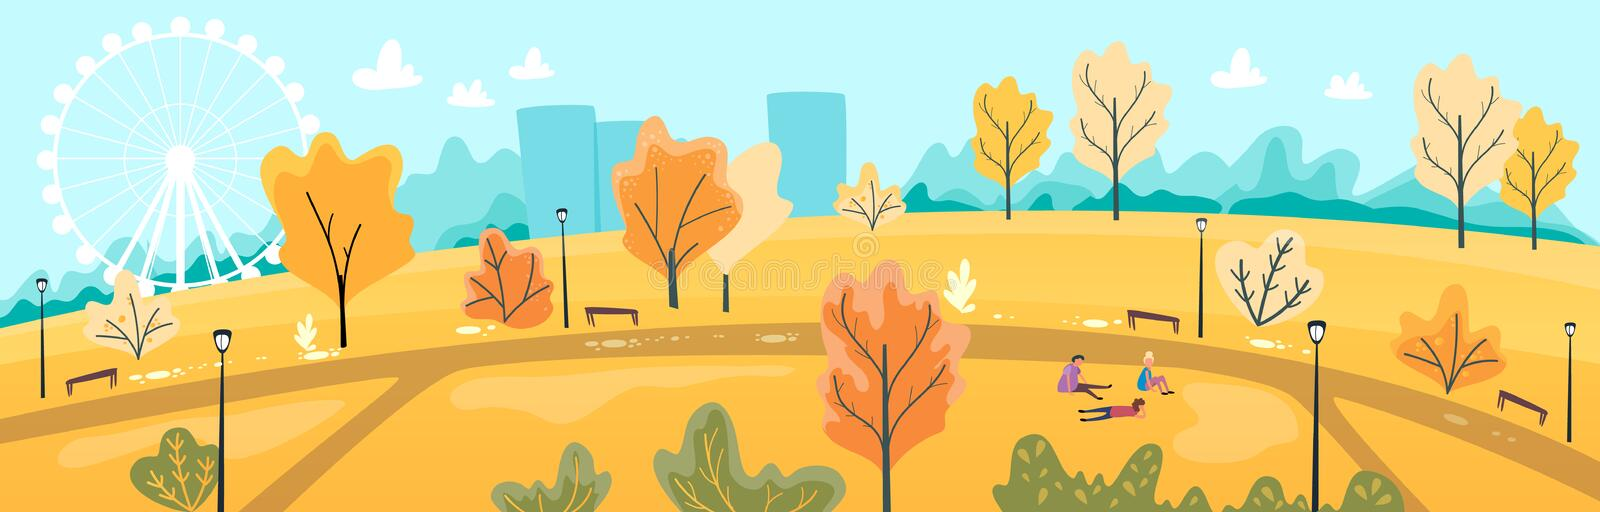 Urban park scenery with people. Autumn cityscape banner. Fall city design. Vector illustration, cartoon flat royalty free illustration